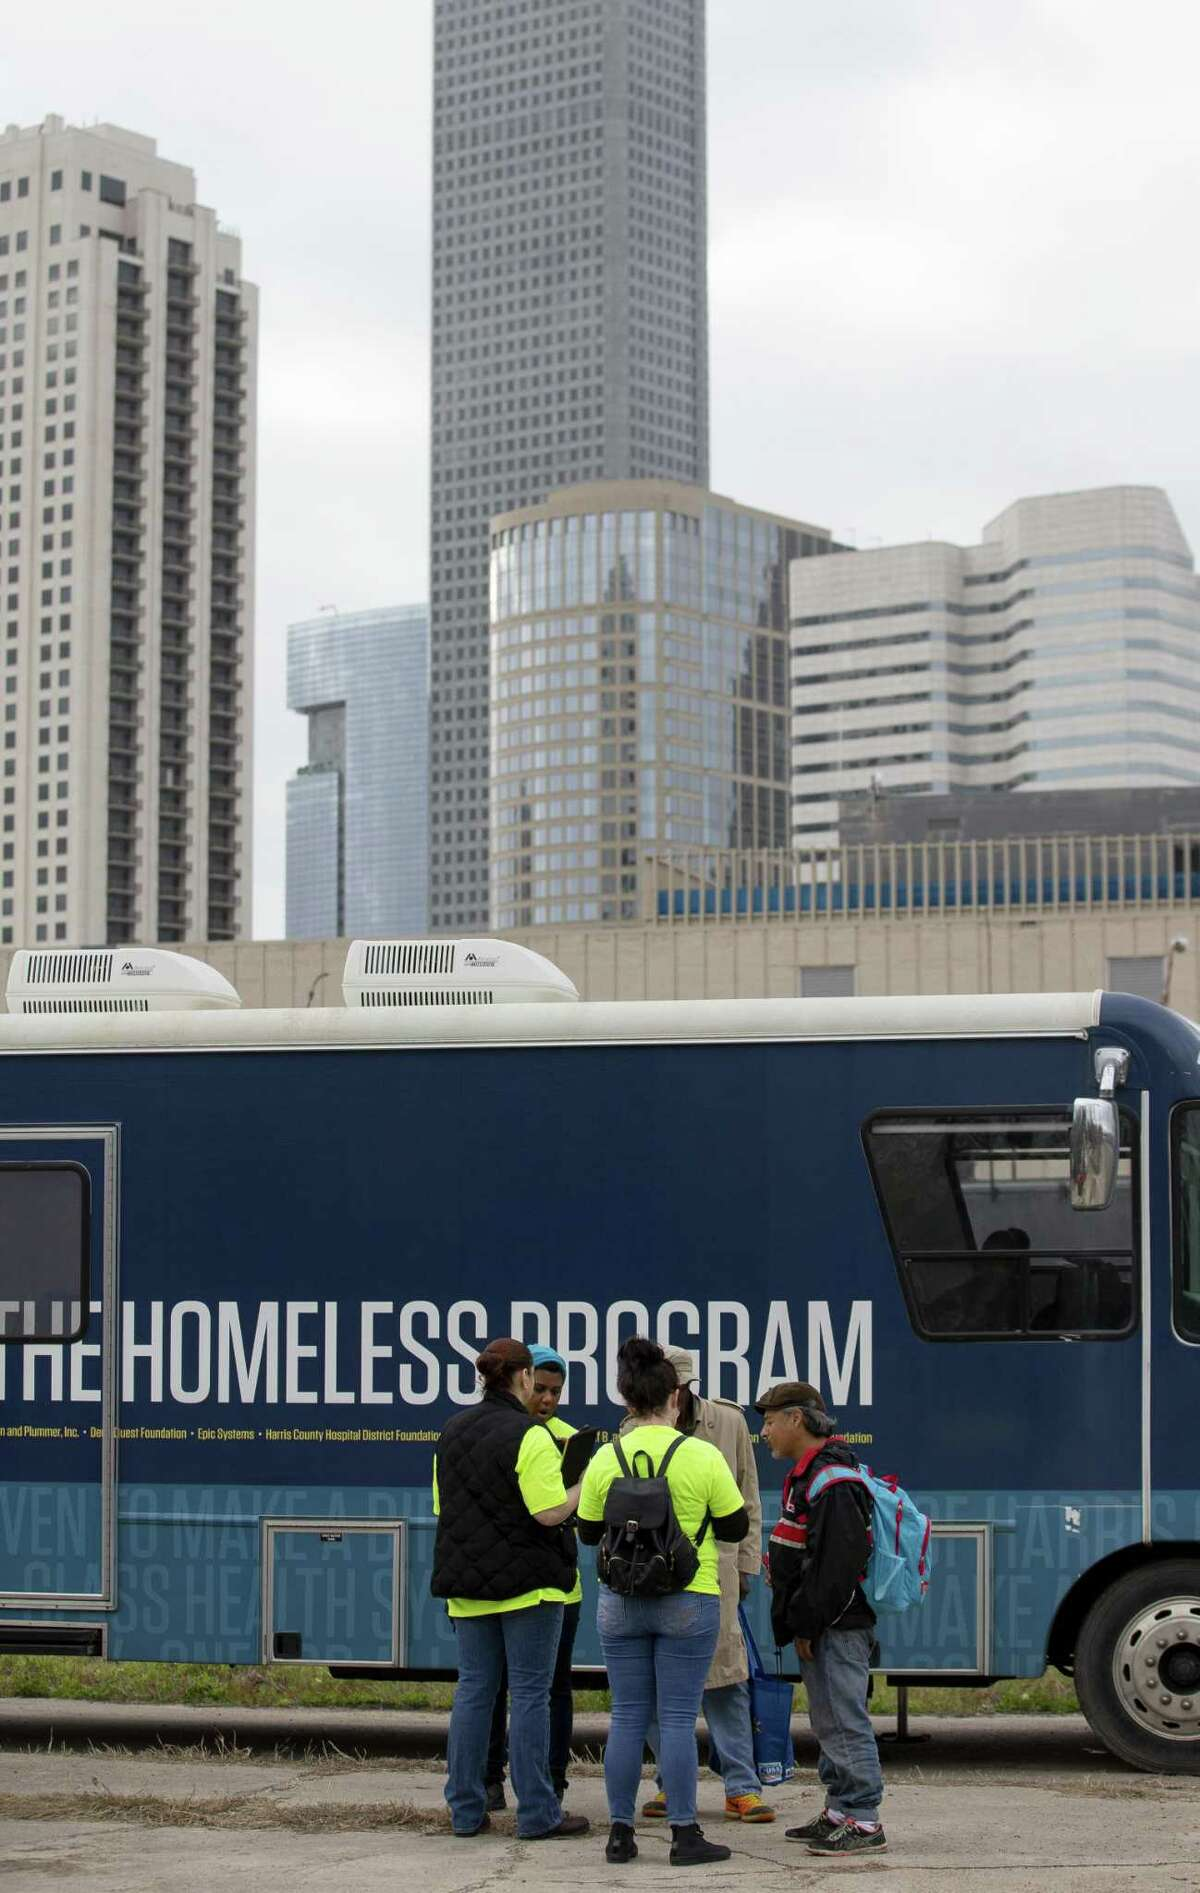 Volunteers and staff from the Houston Coalition for the Homeless and The Way Home connected with the homeless population for the annual homeless count Tuesday, Jan. 22, 2019, in Houston.